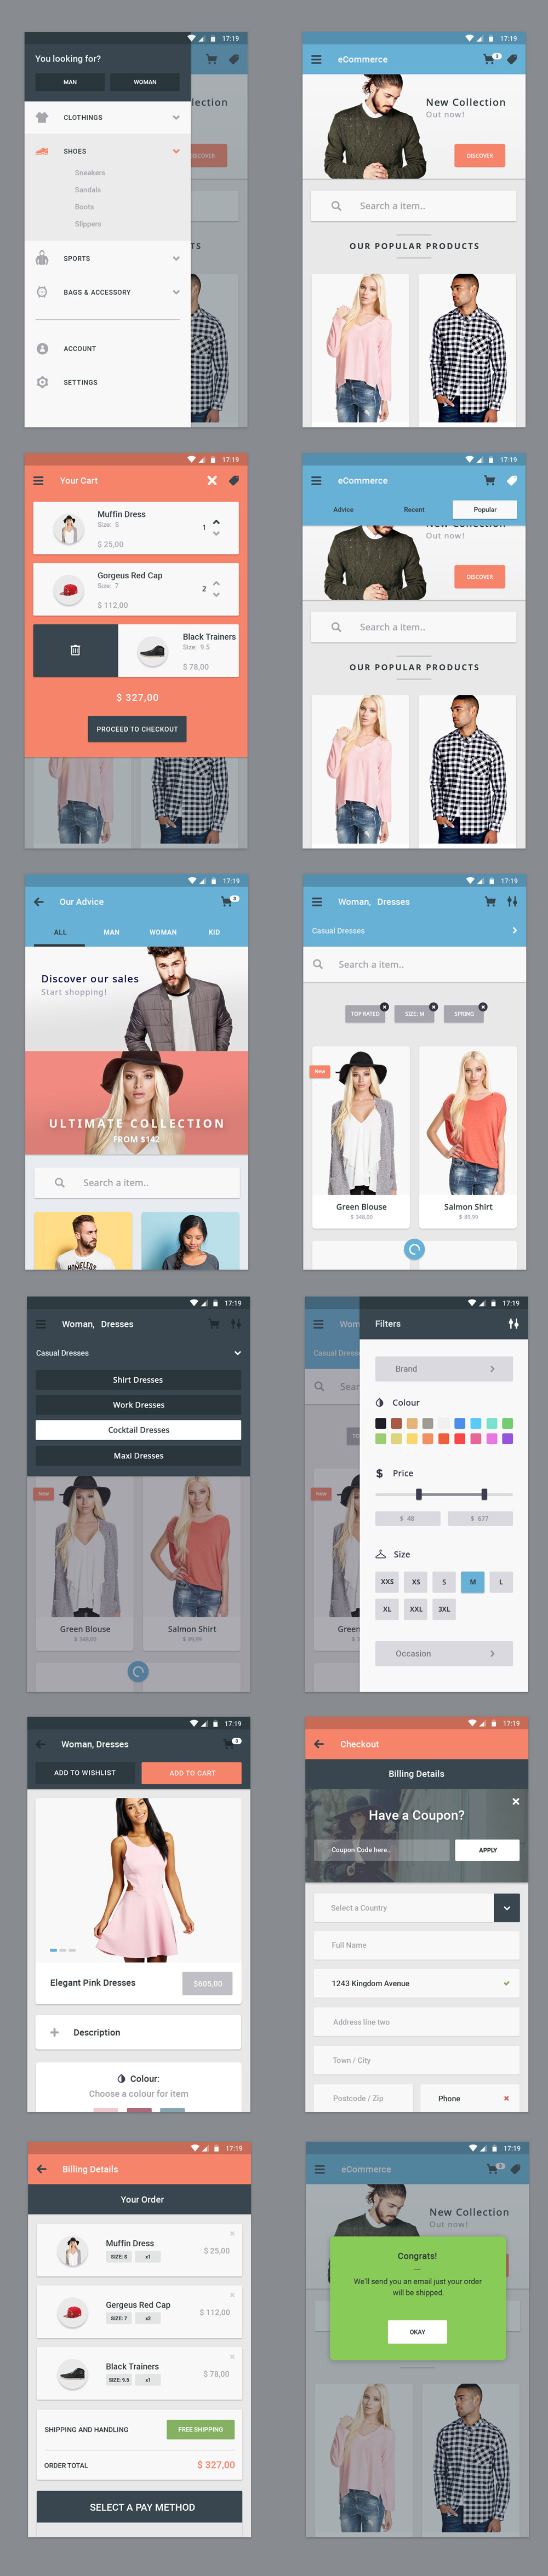 http://www.graphicsfuel.com/wp-content/uploads/2015/05/12-ecommerce-app-ui-screens.jpg